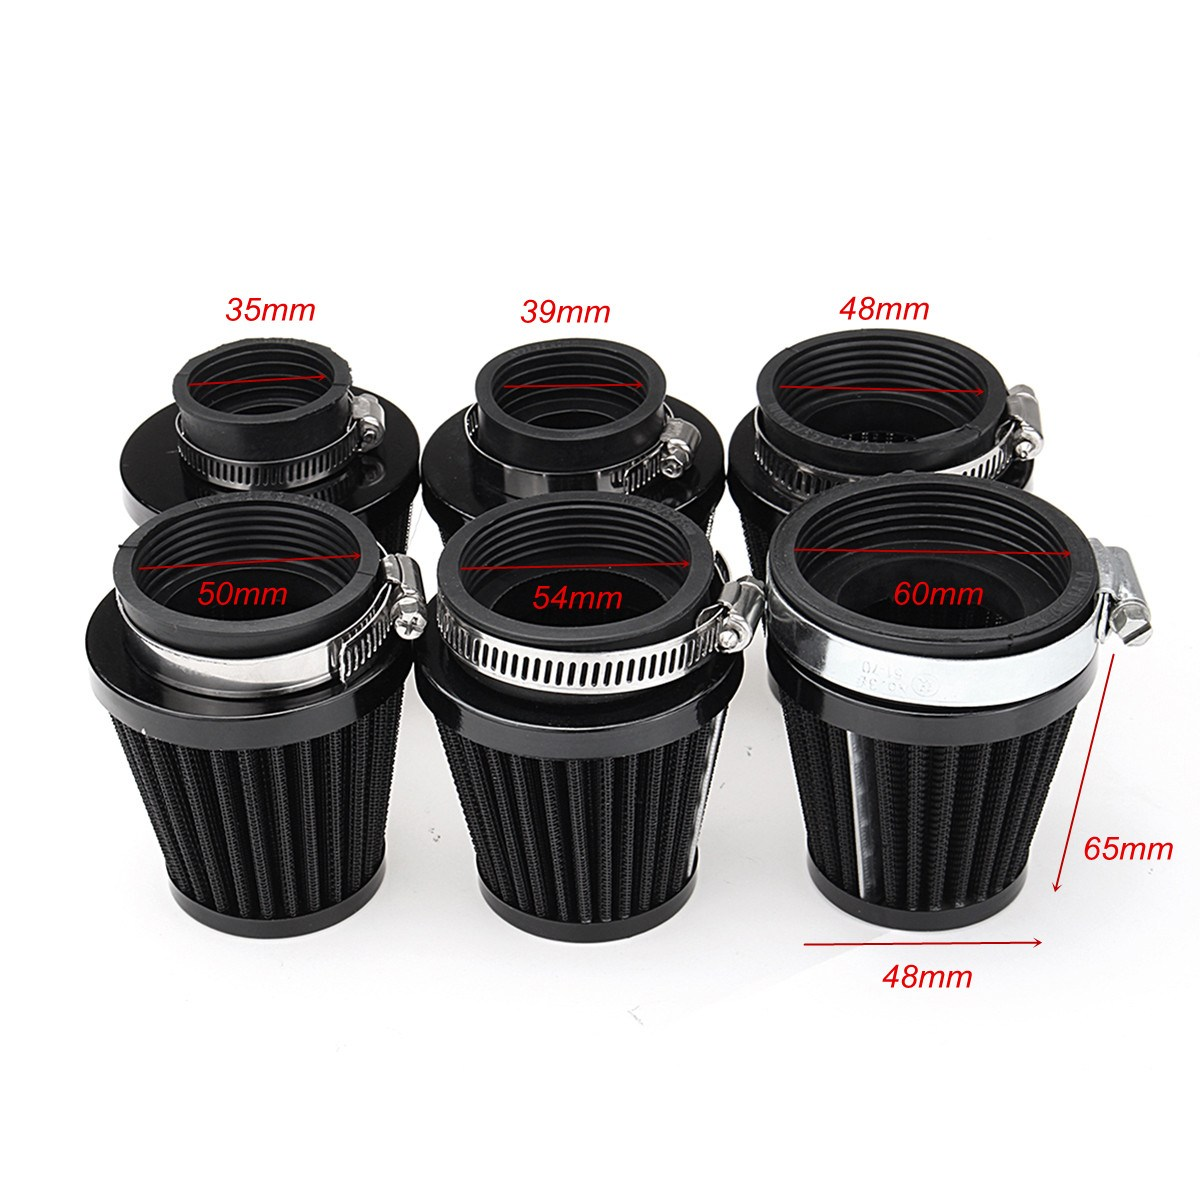 Universal Black Motorcycle Air Filter Pod Cleaner Fit ATV Dirt Bike Quad Scooter 35/39/48/50/54/60mm Pakistan